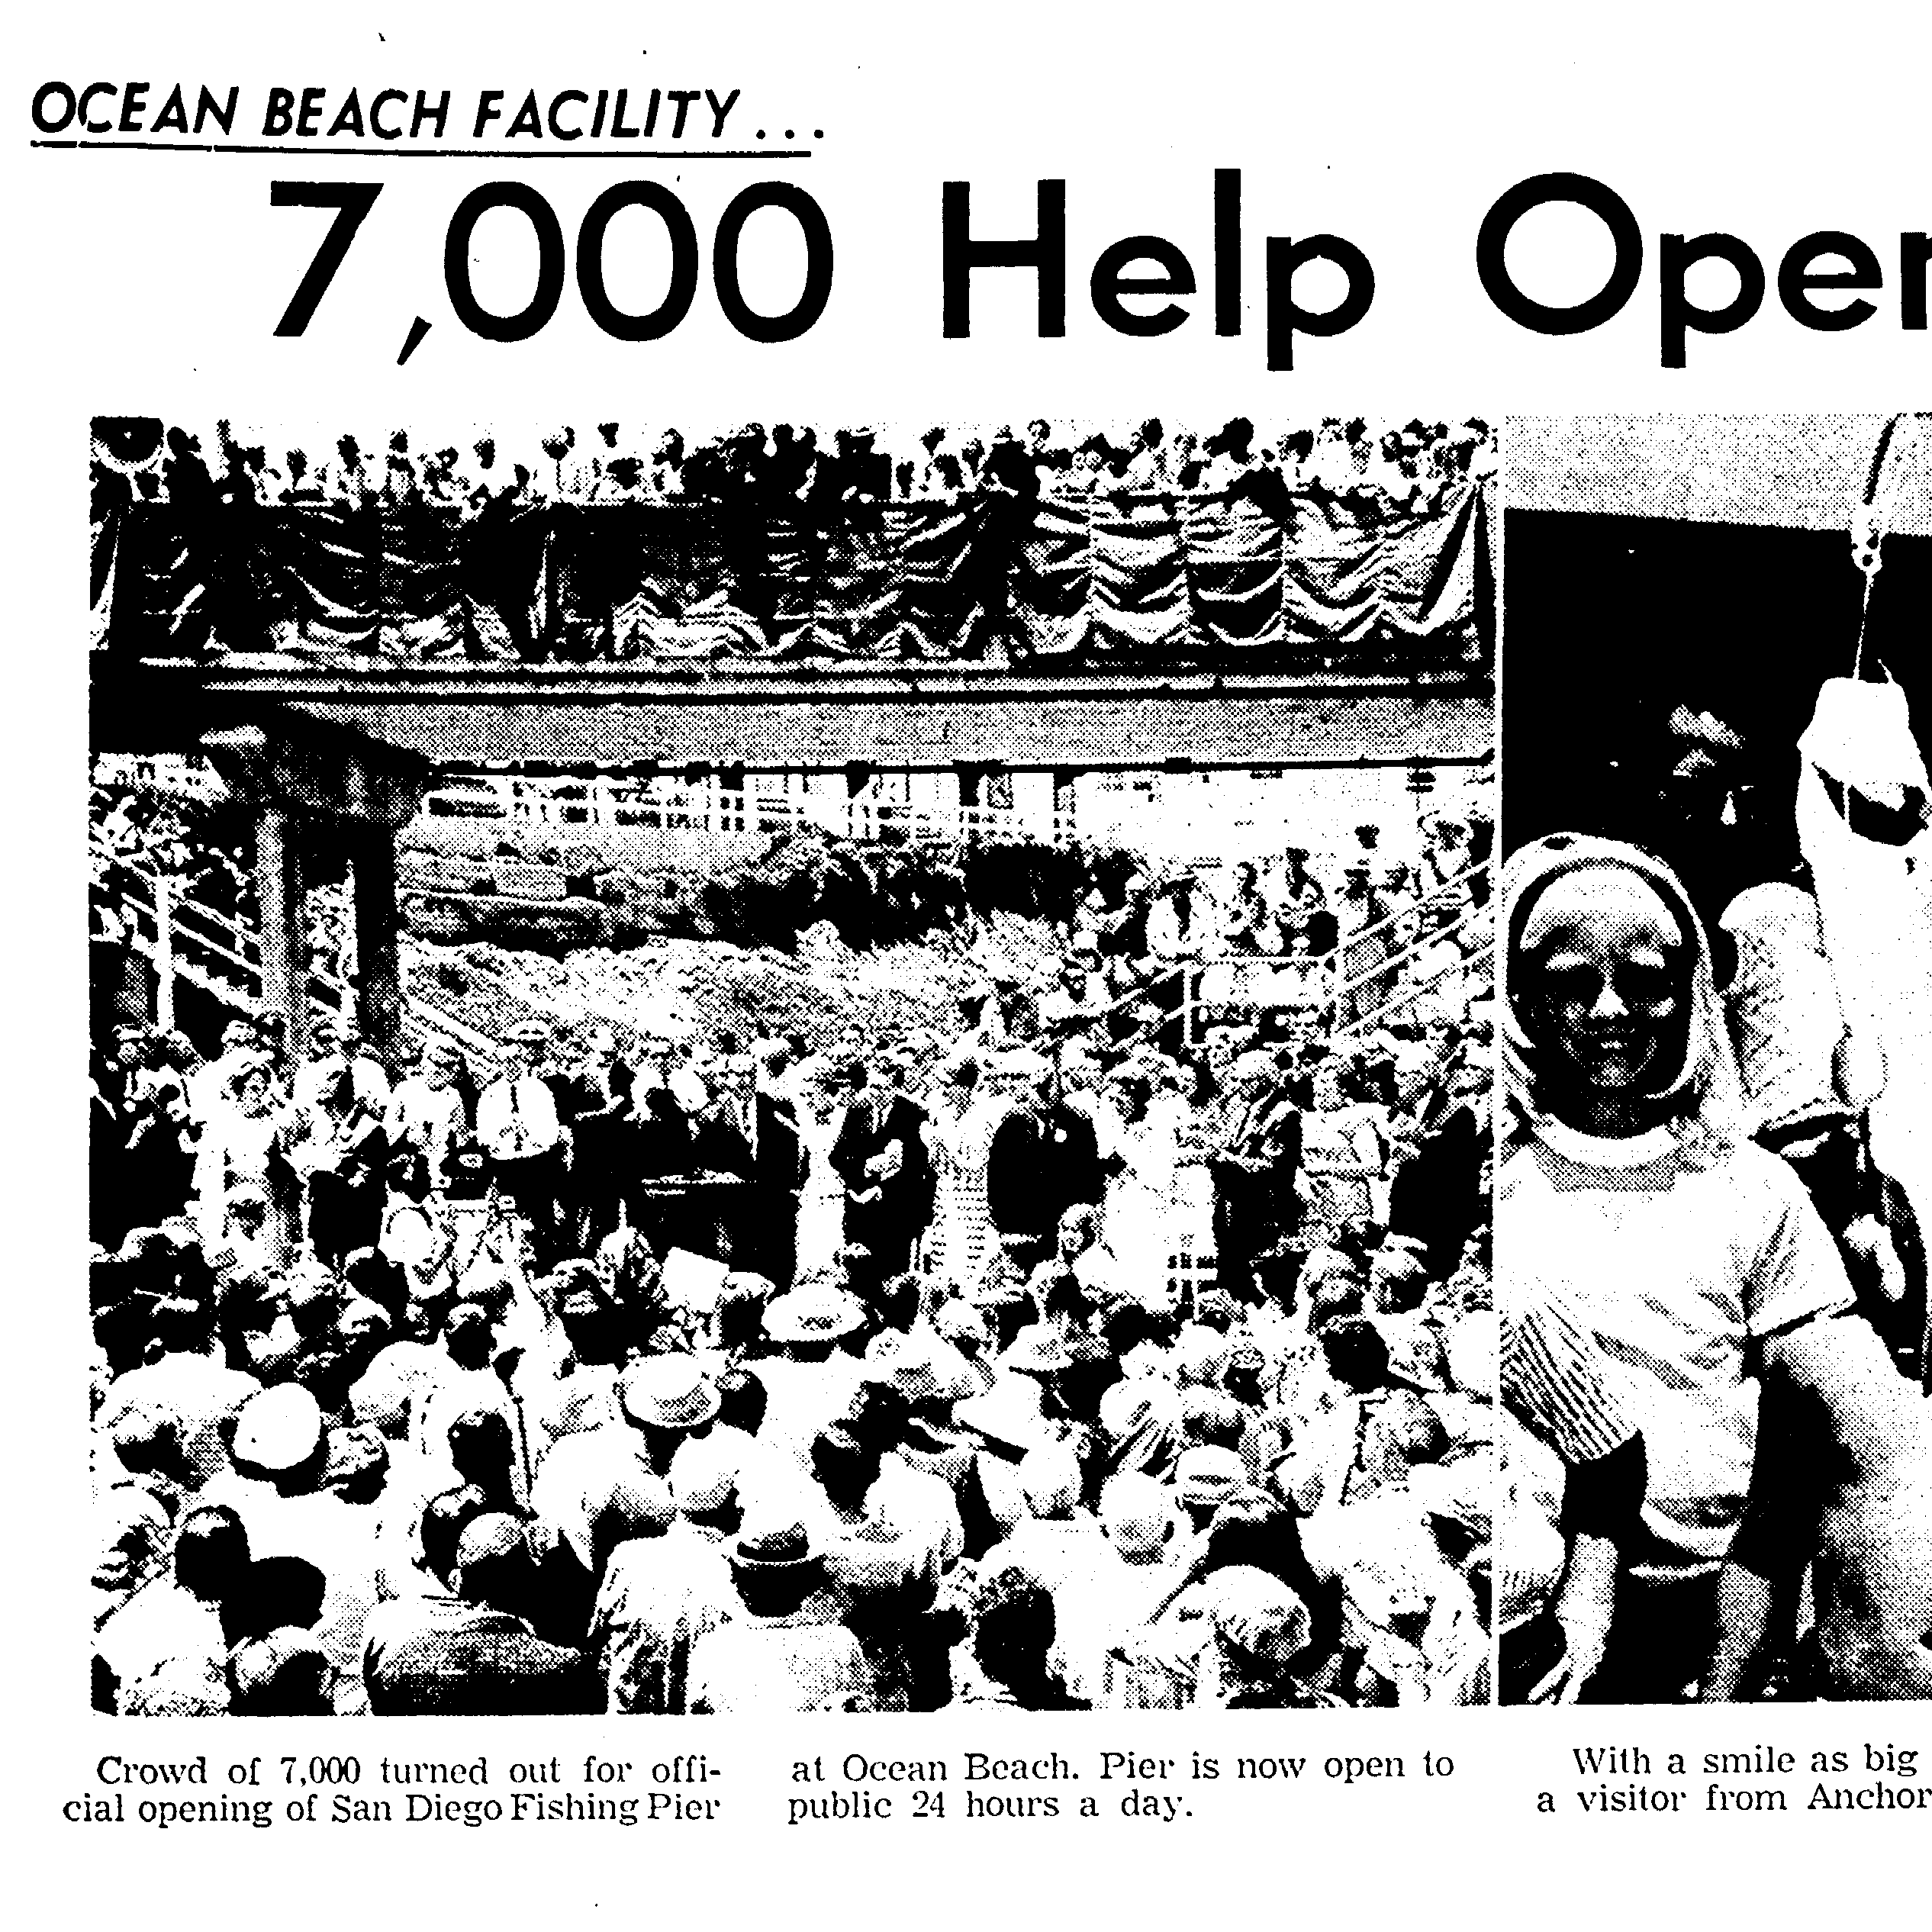 San Diego Union Coverage of 1966 Pier Opening